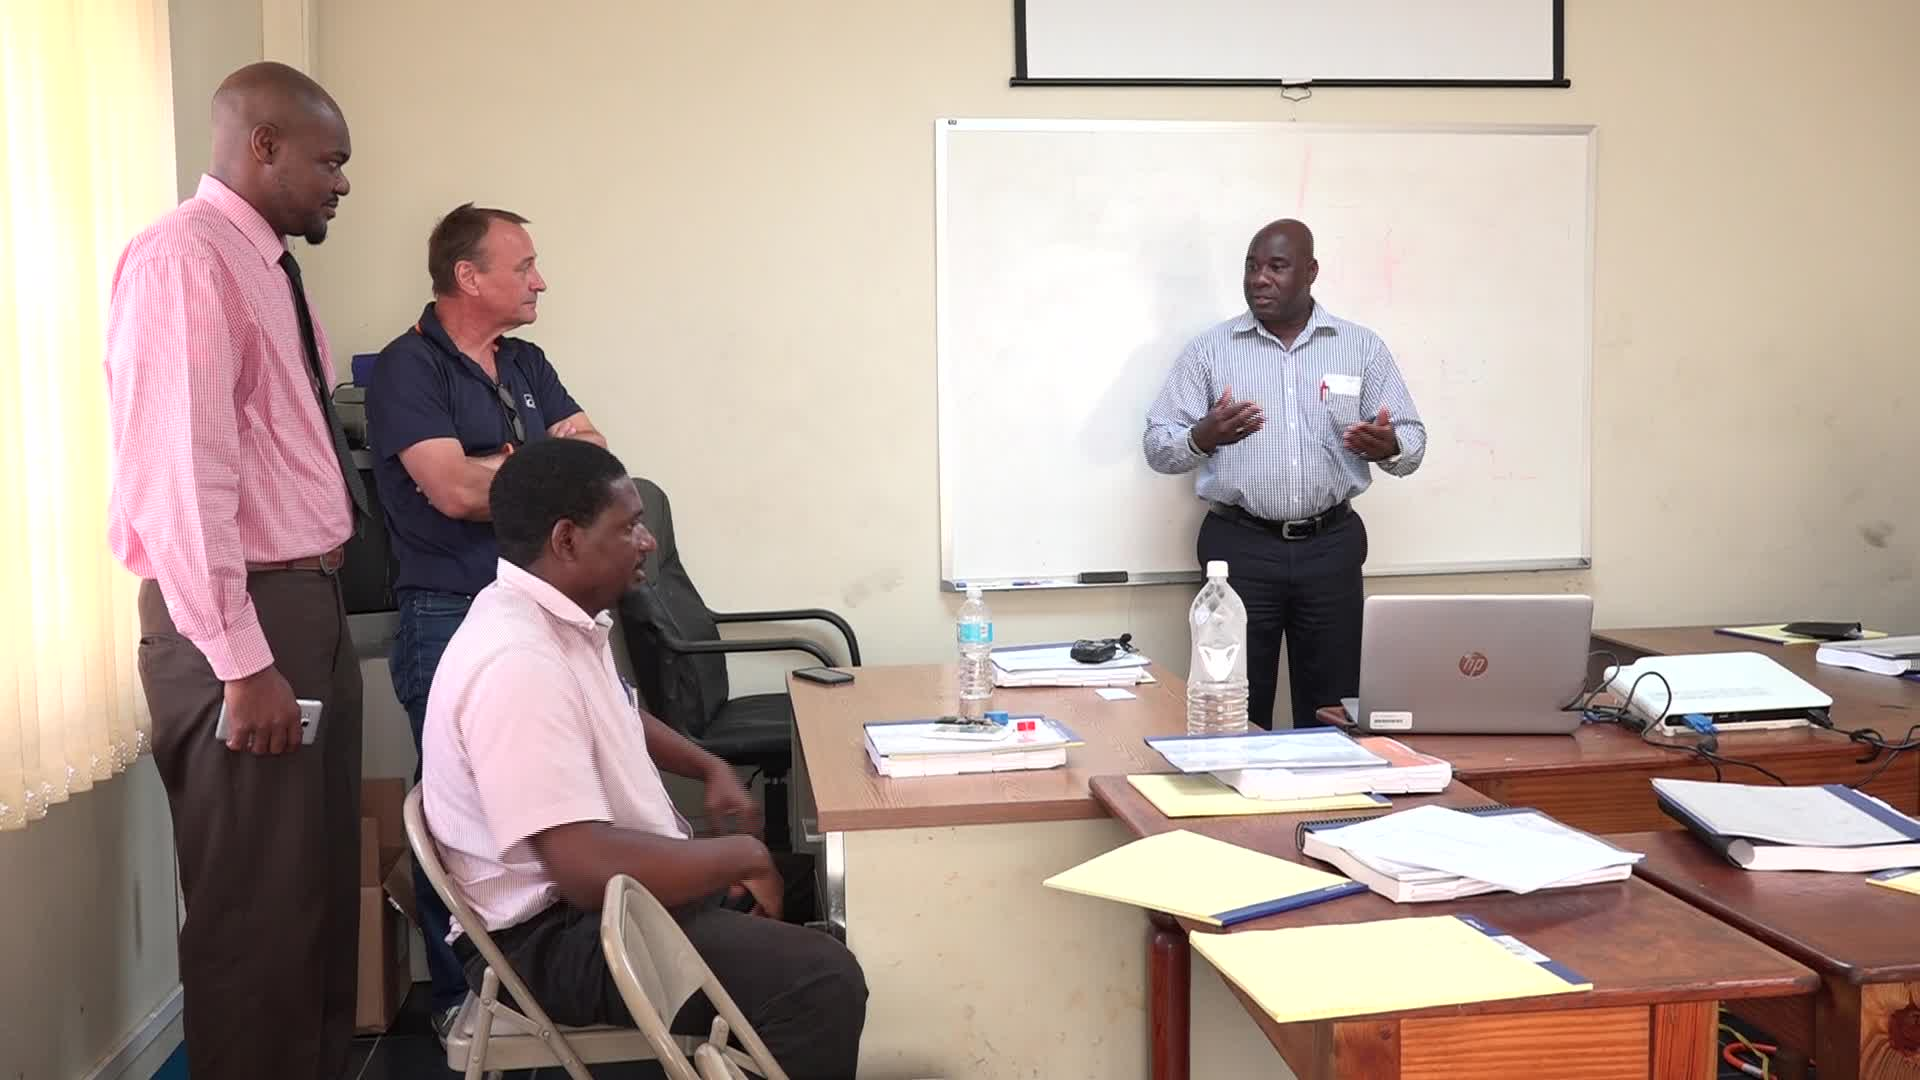 (l-r standing) Mr. Michael Webbe, Nevis Electricity Company Limited's Senior Human Resource Officer, Mr. Matti Kakko, Senior Instructor Technical Service Turbochargers Wӓrtsilӓ North America Inc. and a participant at the Nevis Electricity Company Limited training session July 31, 2017 at the Prospect Power Plant meeting room listening to Hon. Alexis Jeffers, Minister of Public Utilities on Nevis